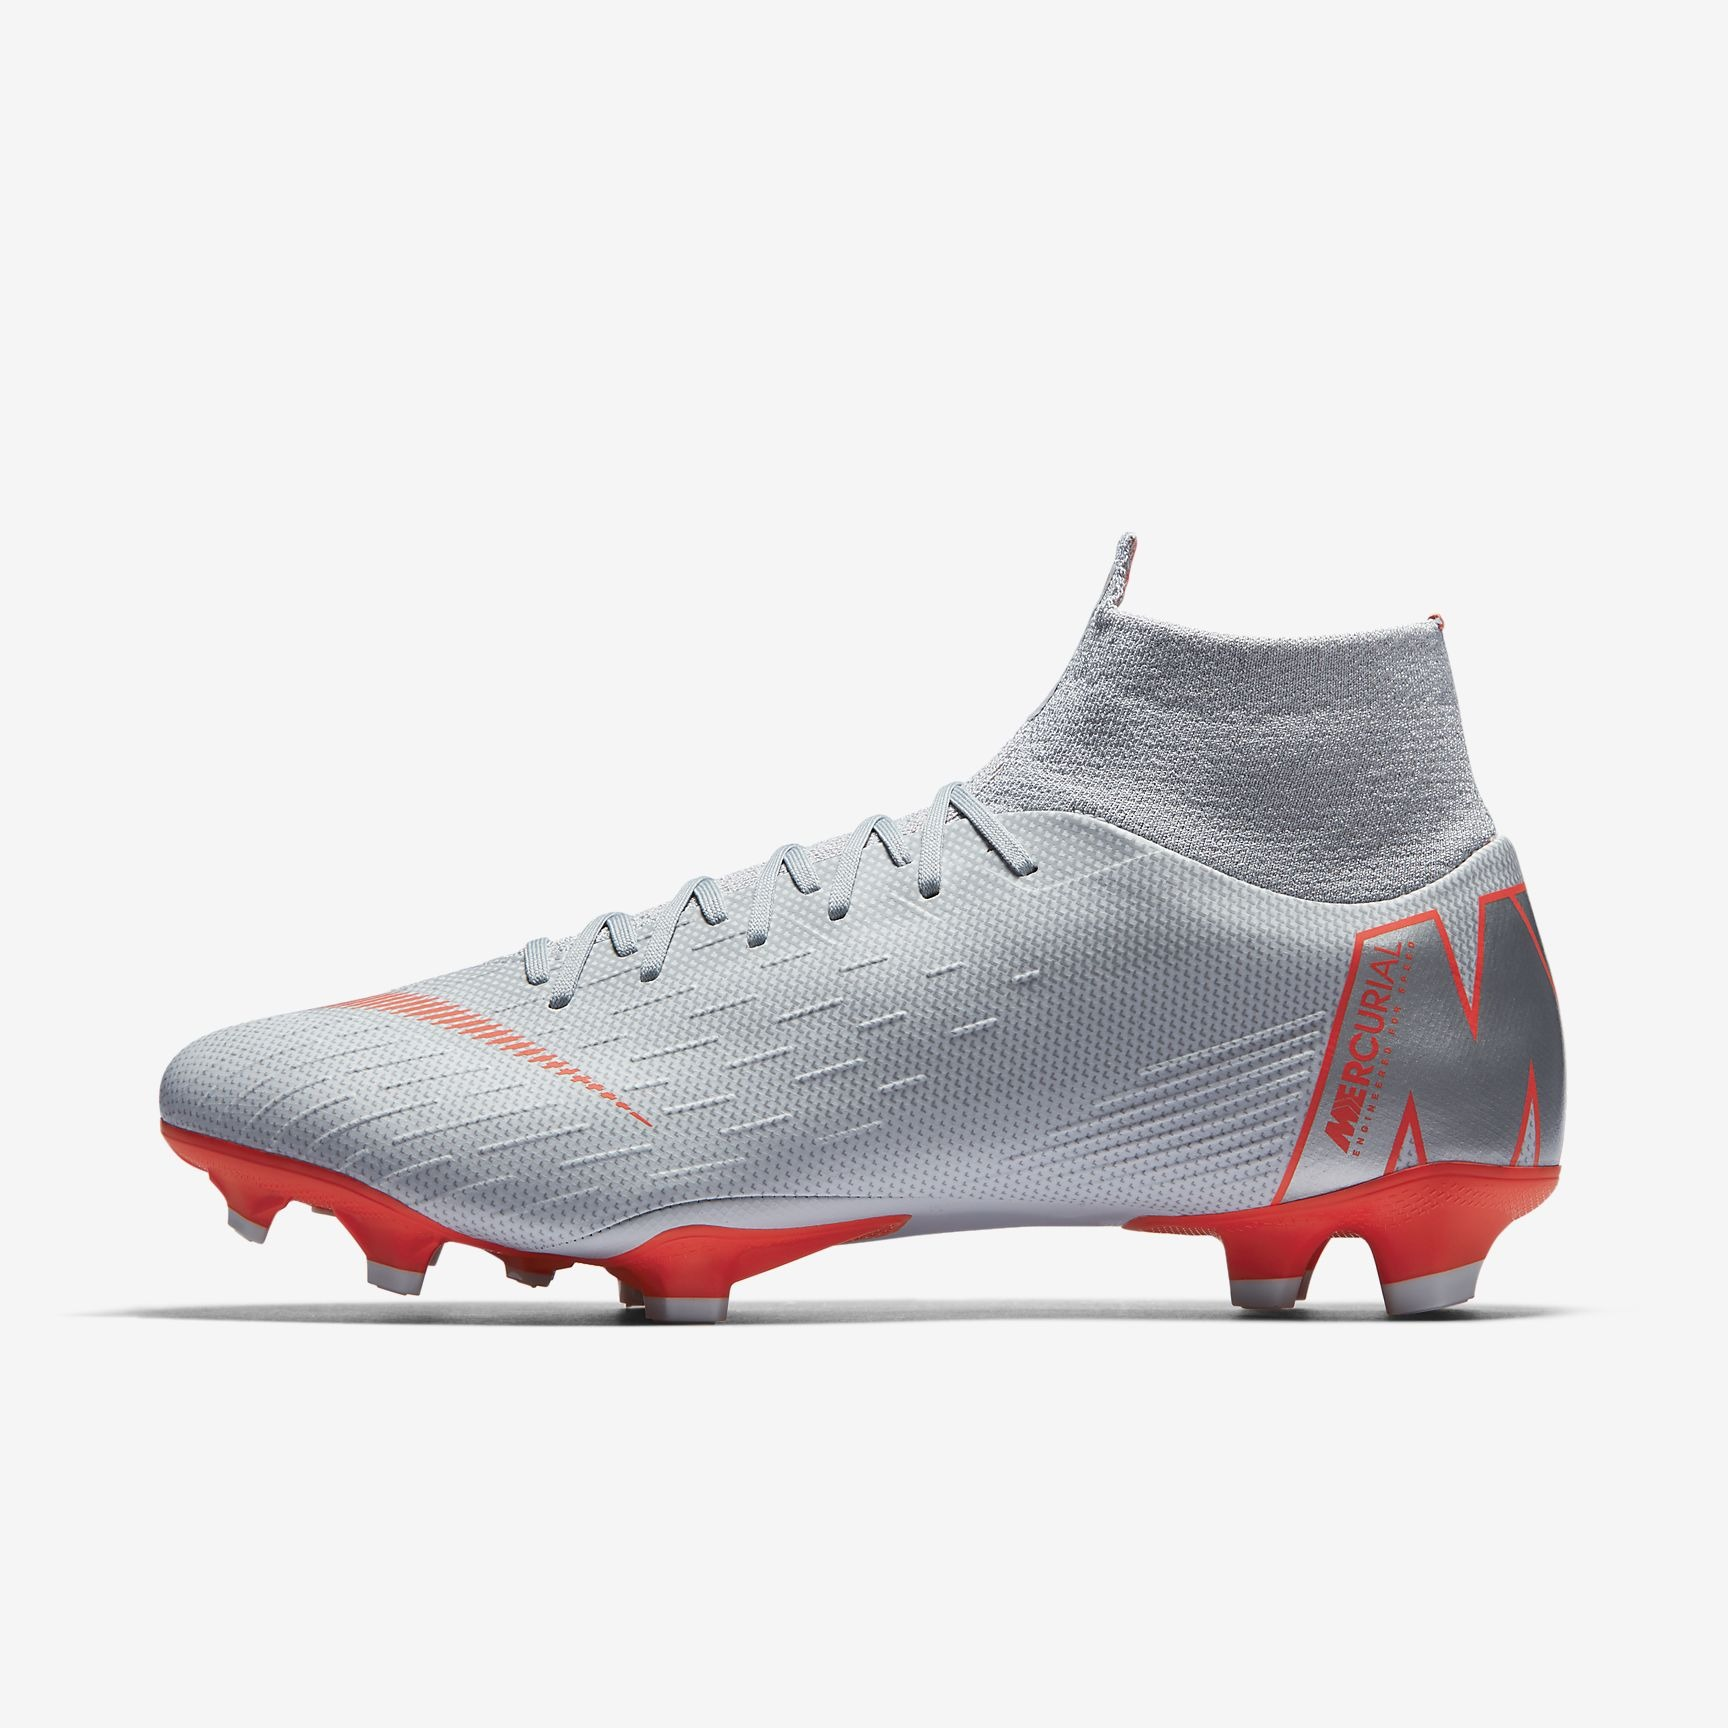 brand new 18b30 6ea9d Soccer Store Solution   NIKE MERCURIAL SUPERFLY VI PRO FG soccer boots